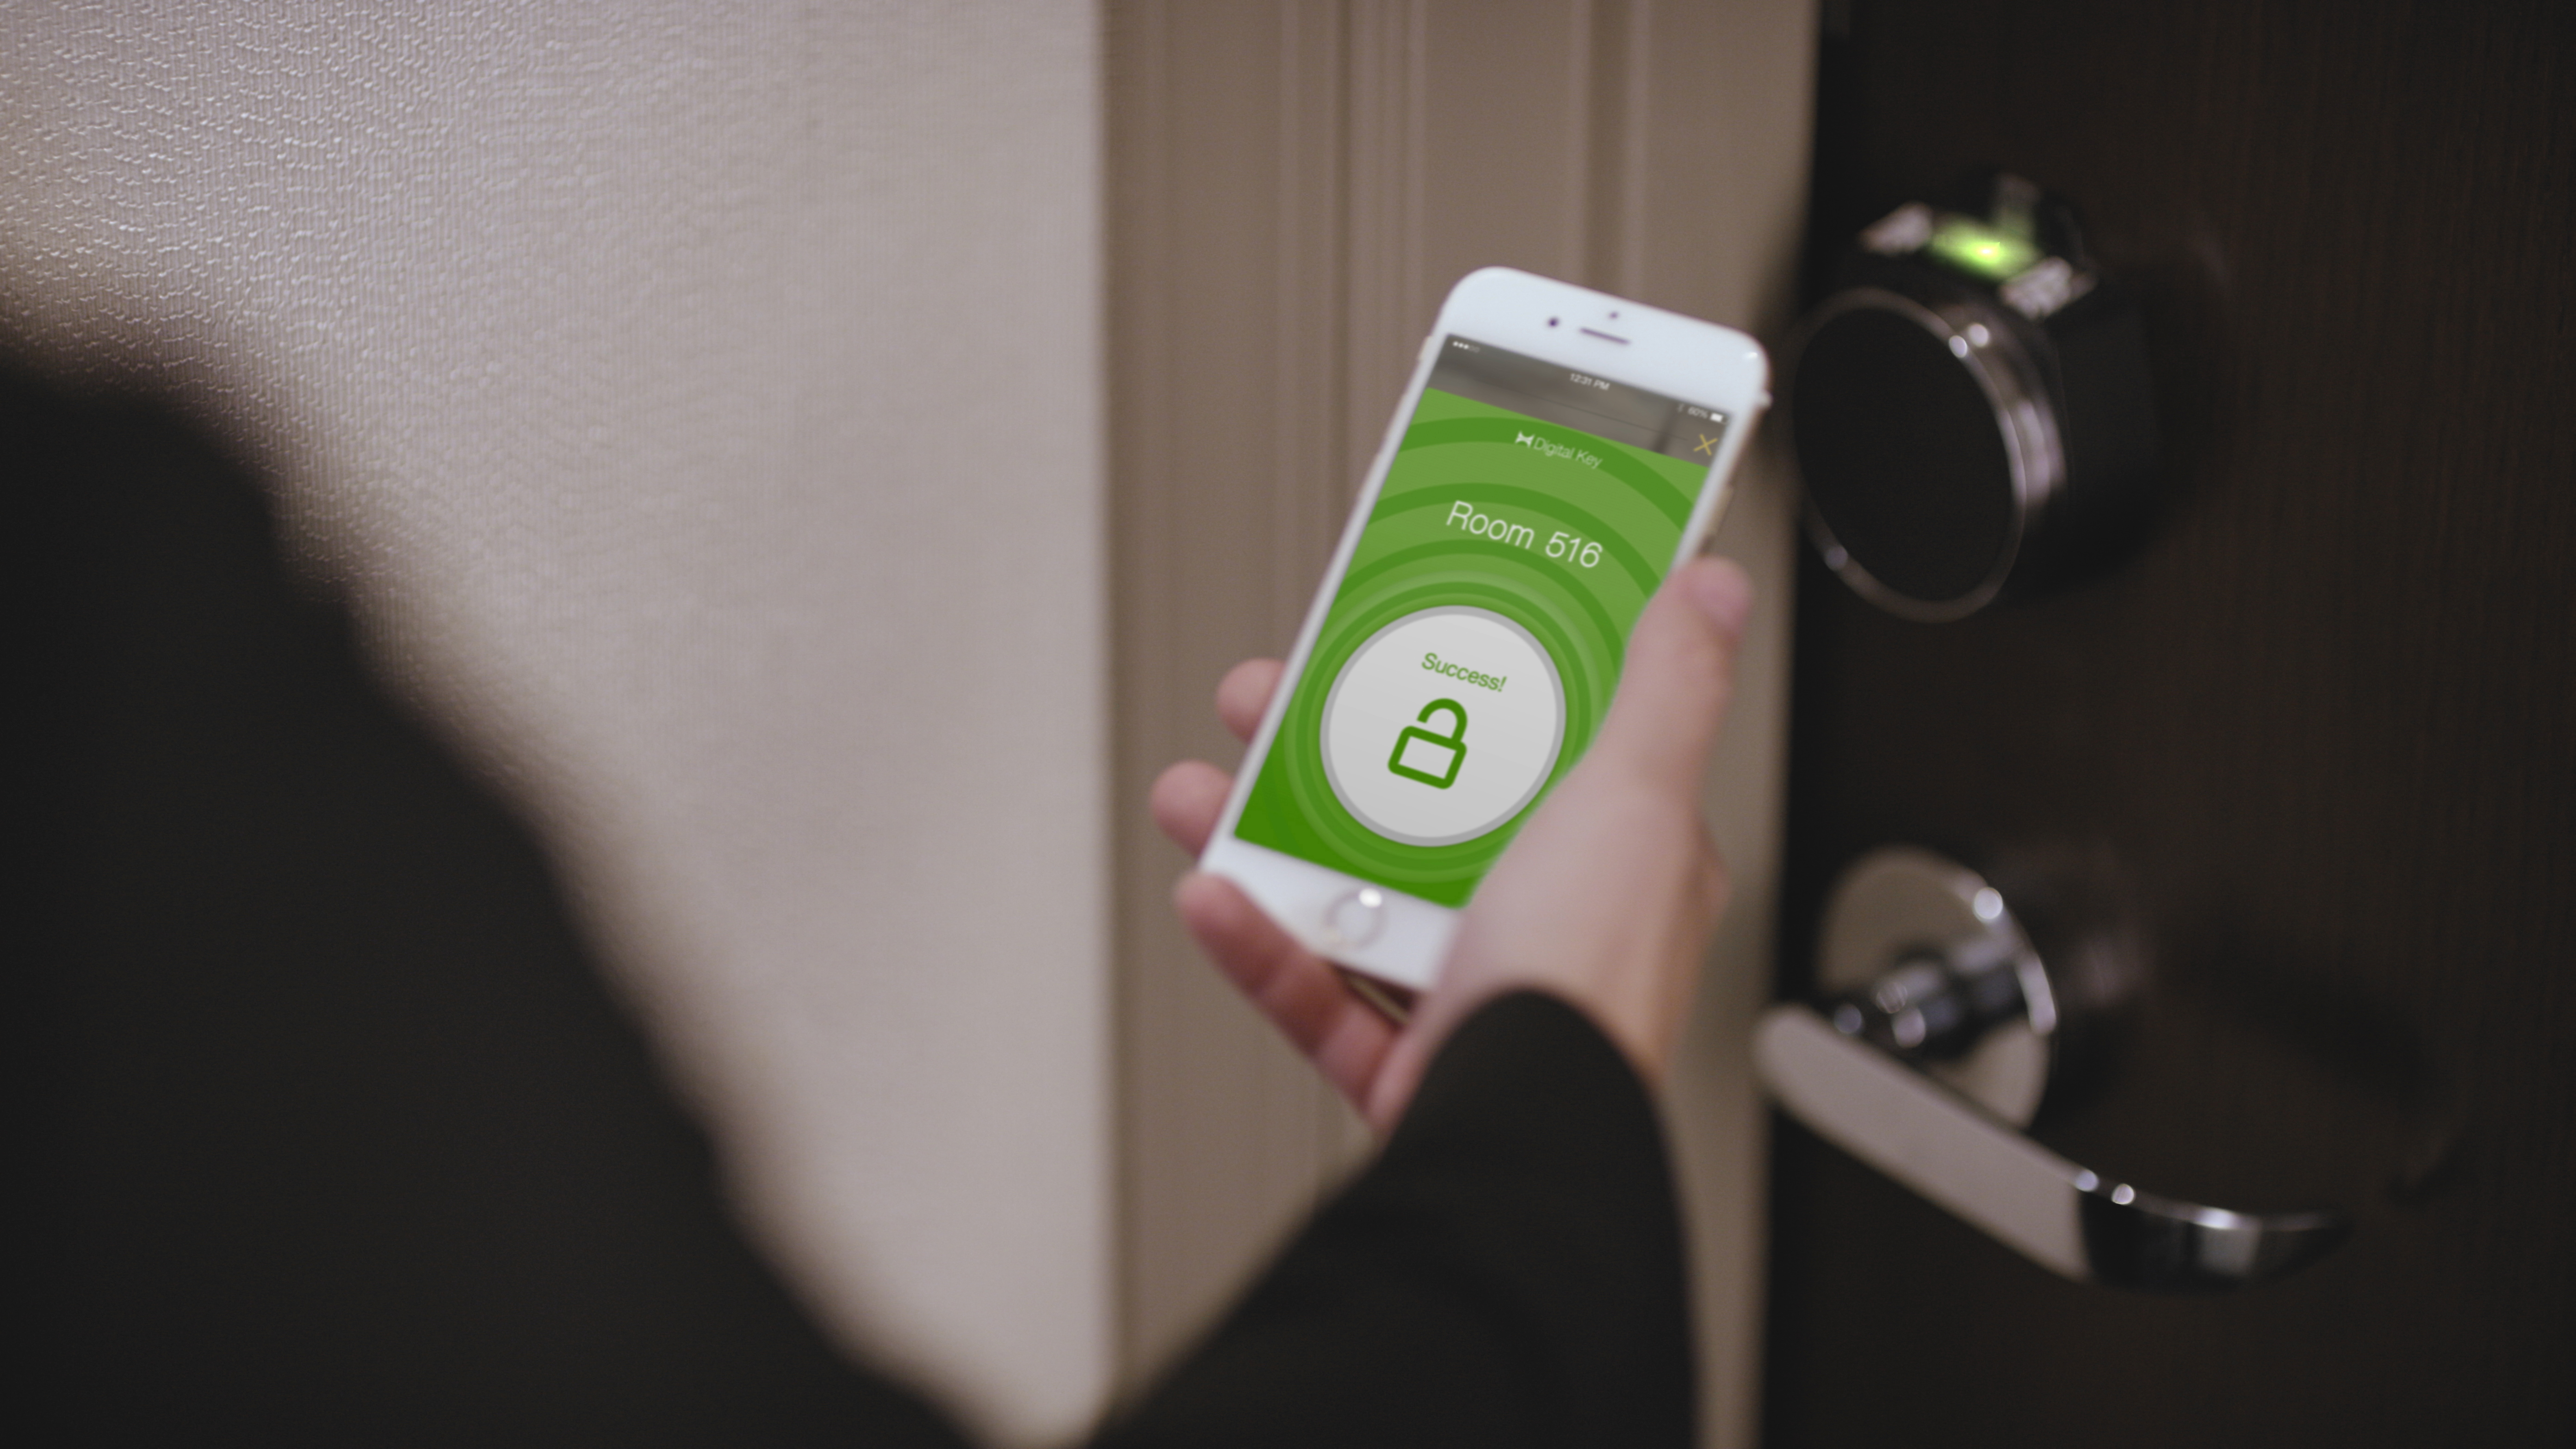 Since Hilton's introduction of digital check-in with room selection last July, HHonors members have digitally checked in more than 5 million times to date.